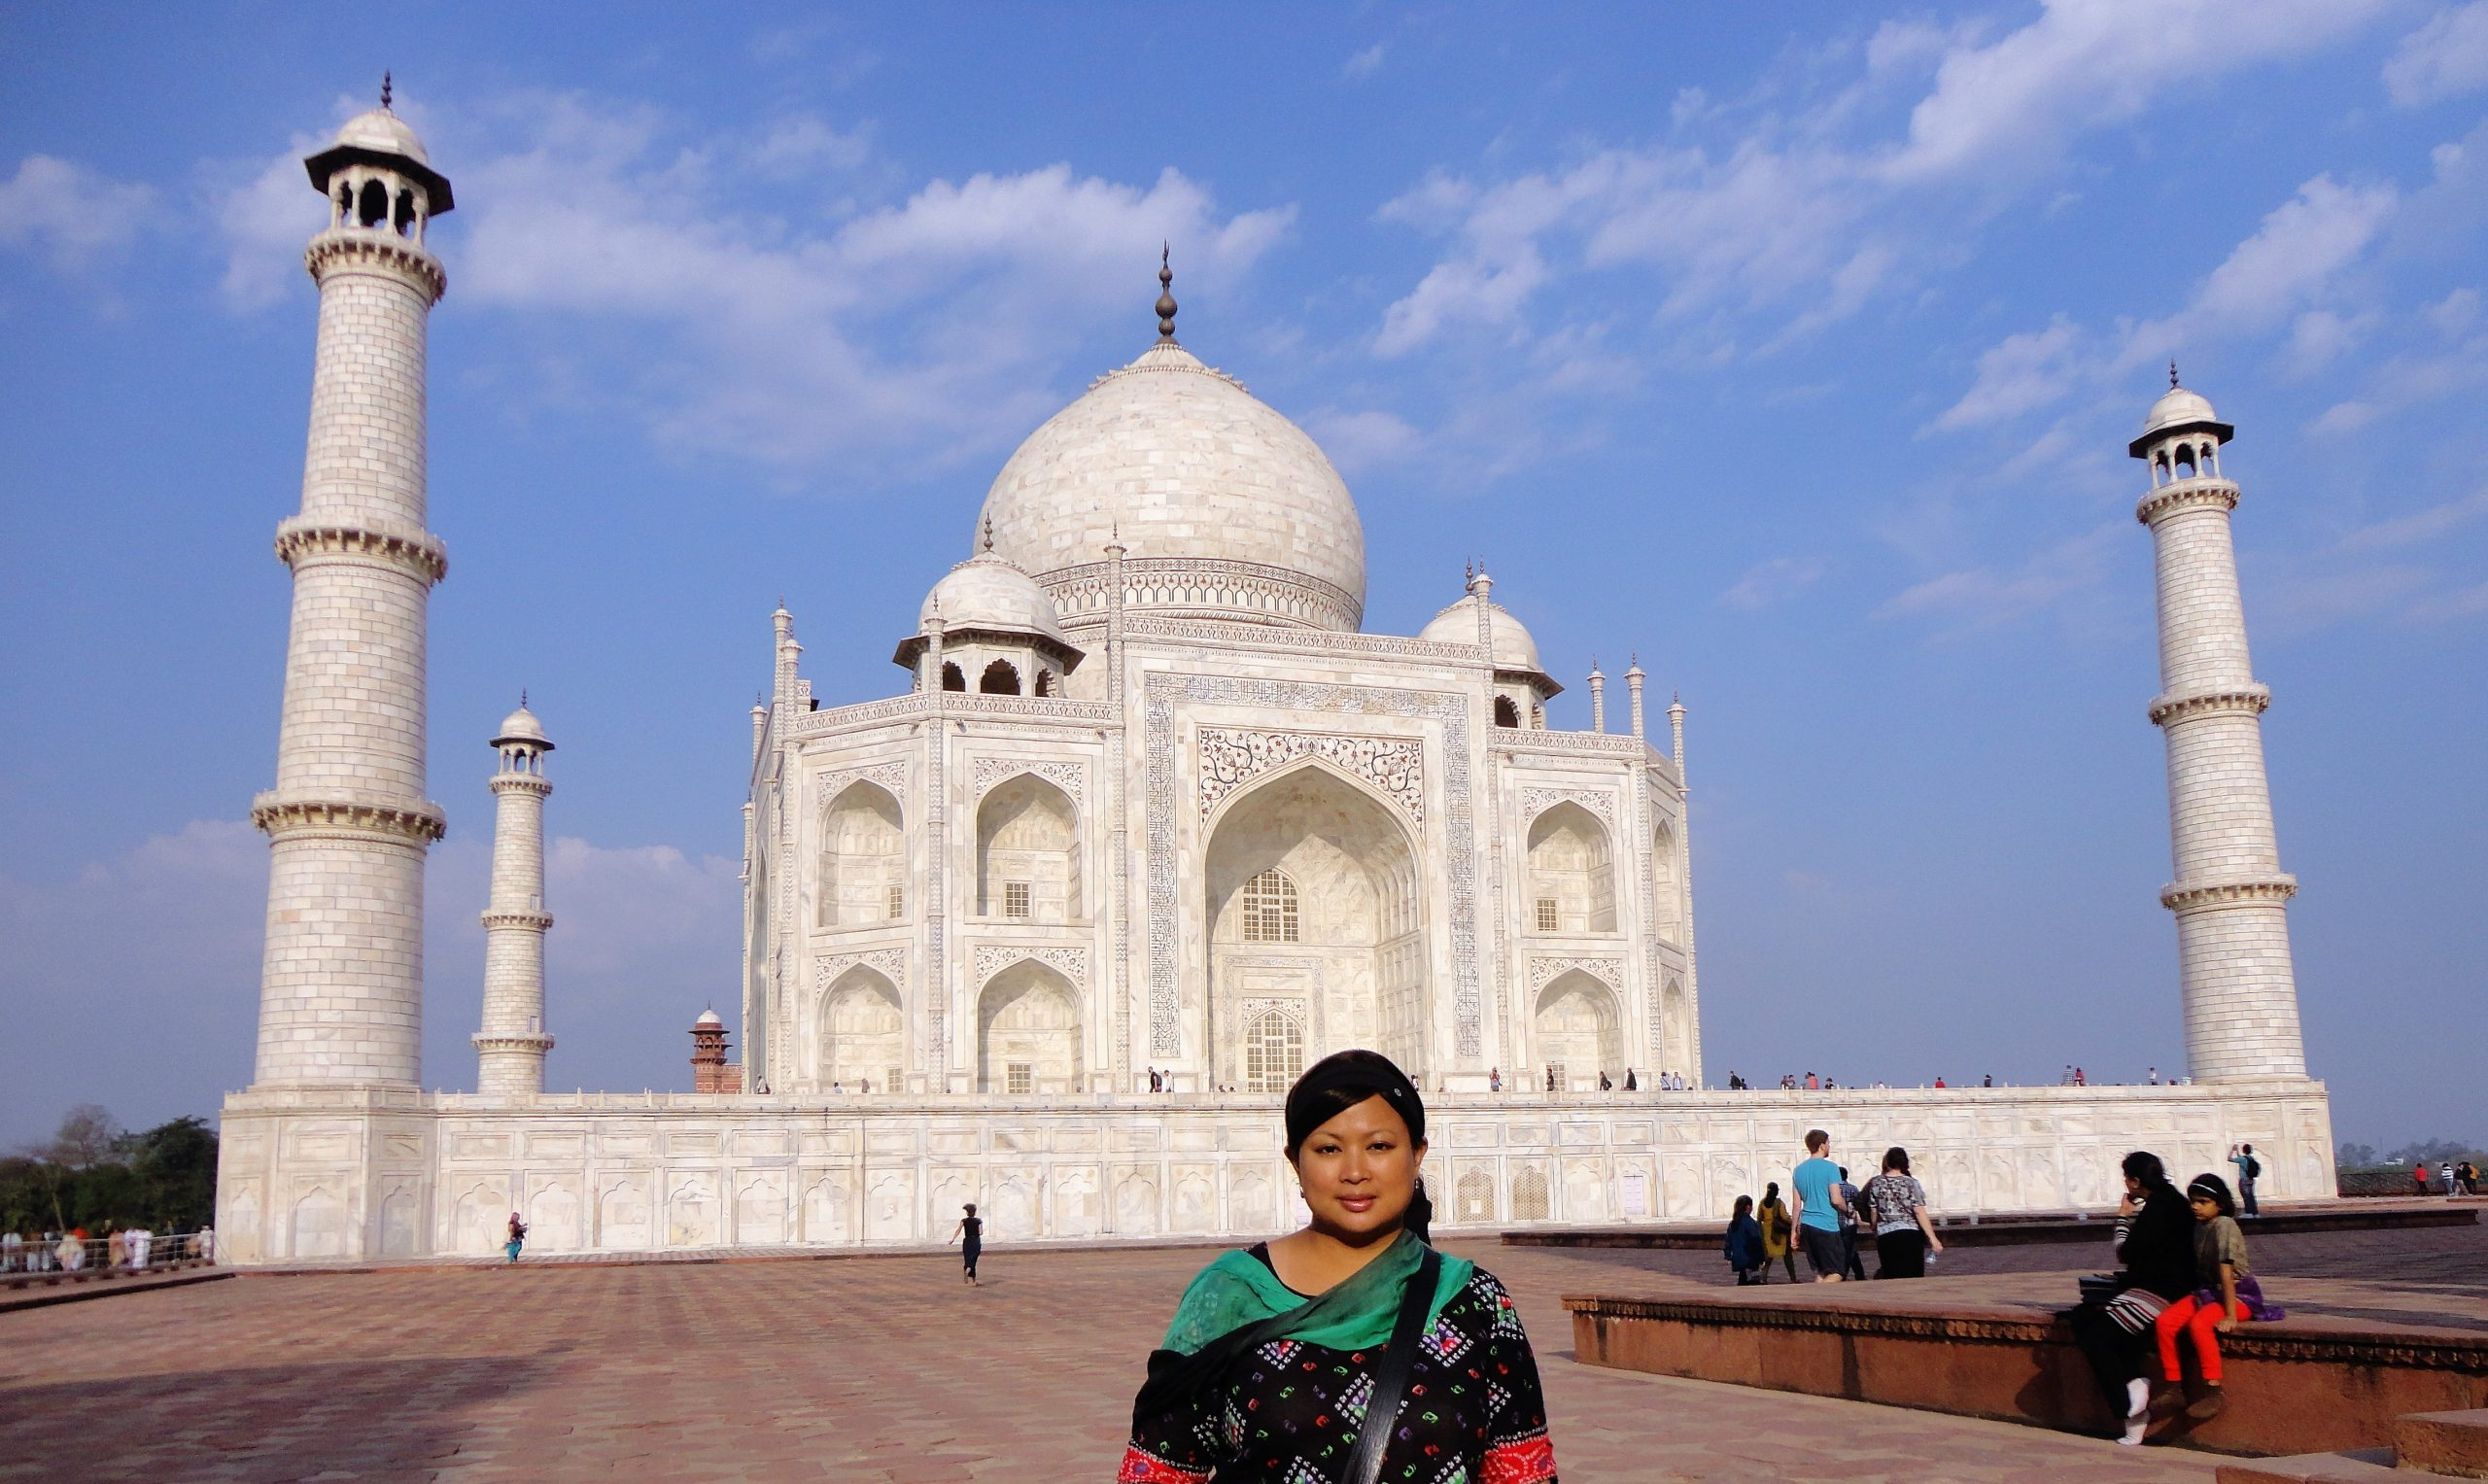 Picture of Elinor Taroy in front of the Taj Mahal